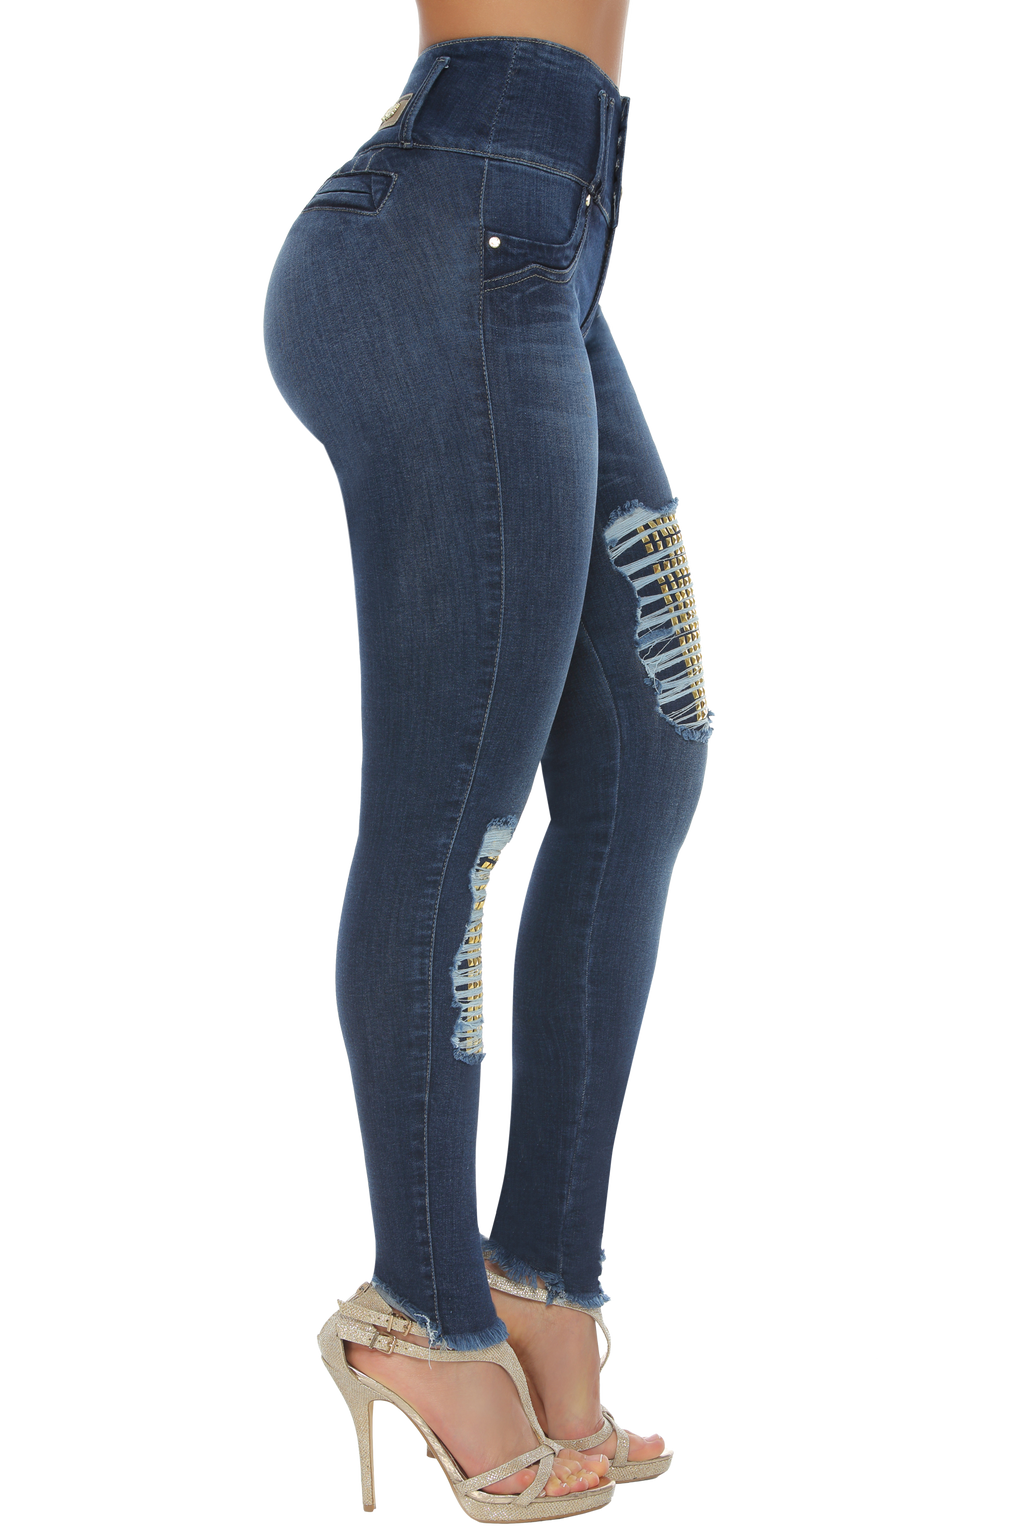 LOUISIANA high rise rippied skinny jeans w/ gold studs